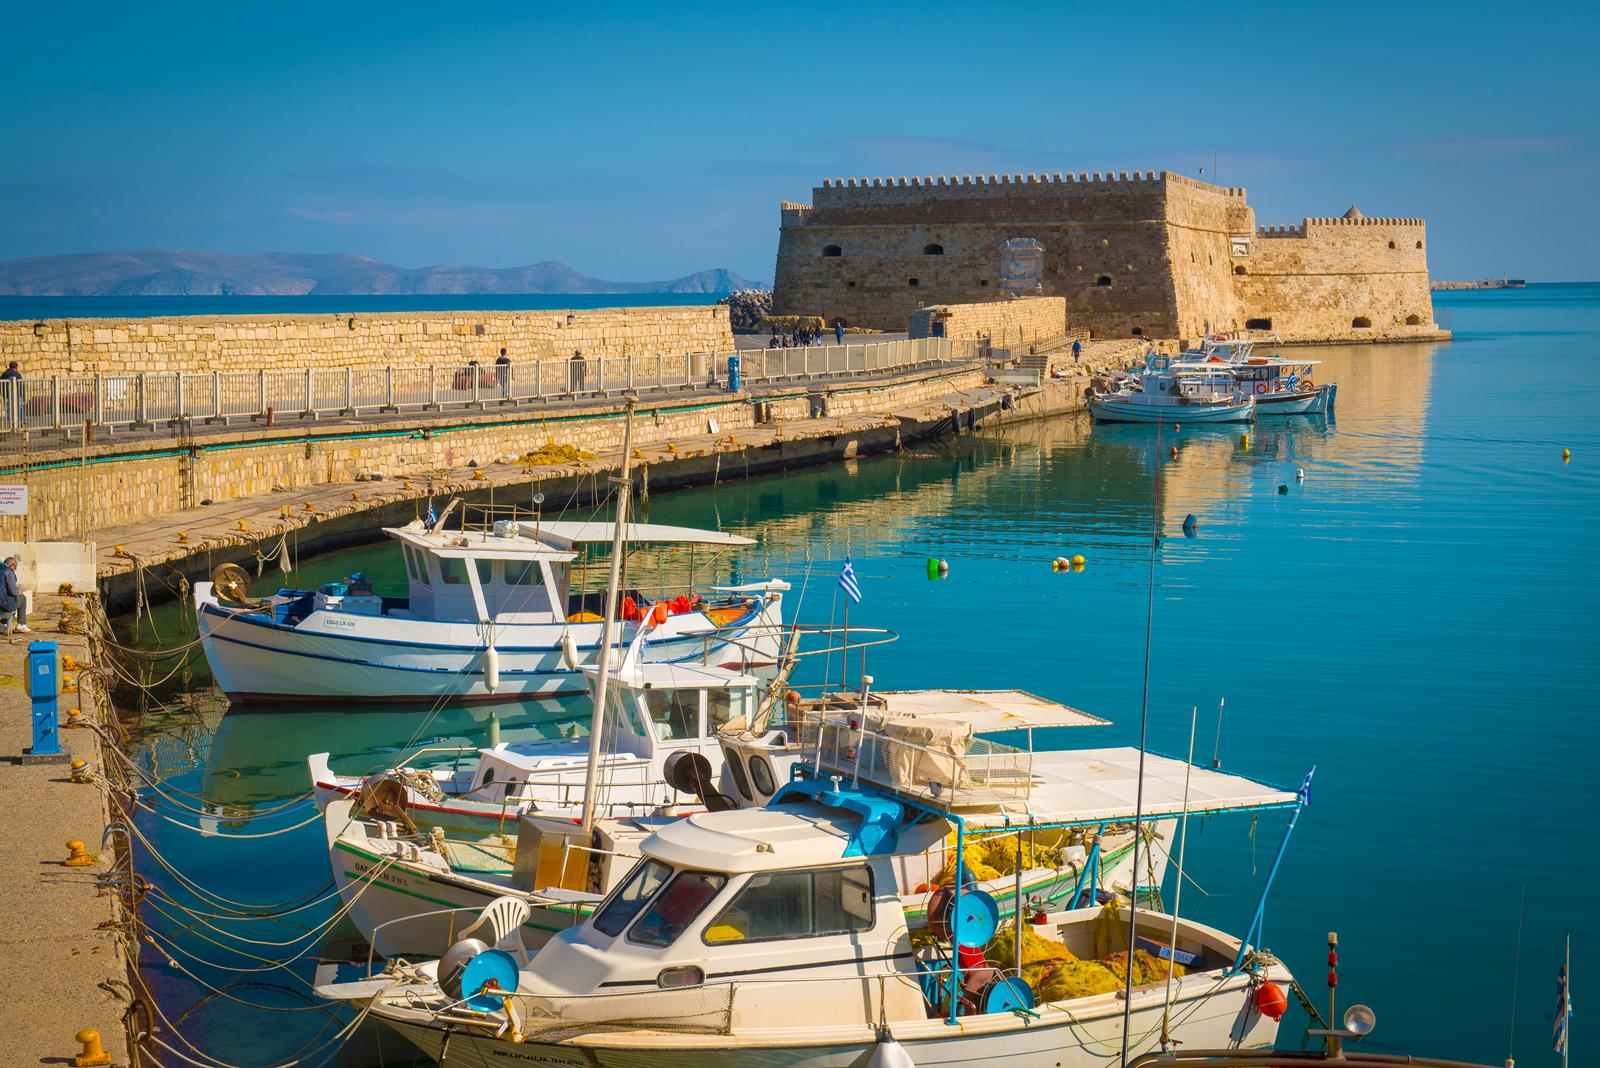 Luxury Hotels in Heraklion Crete - Metropole Urban Hotel